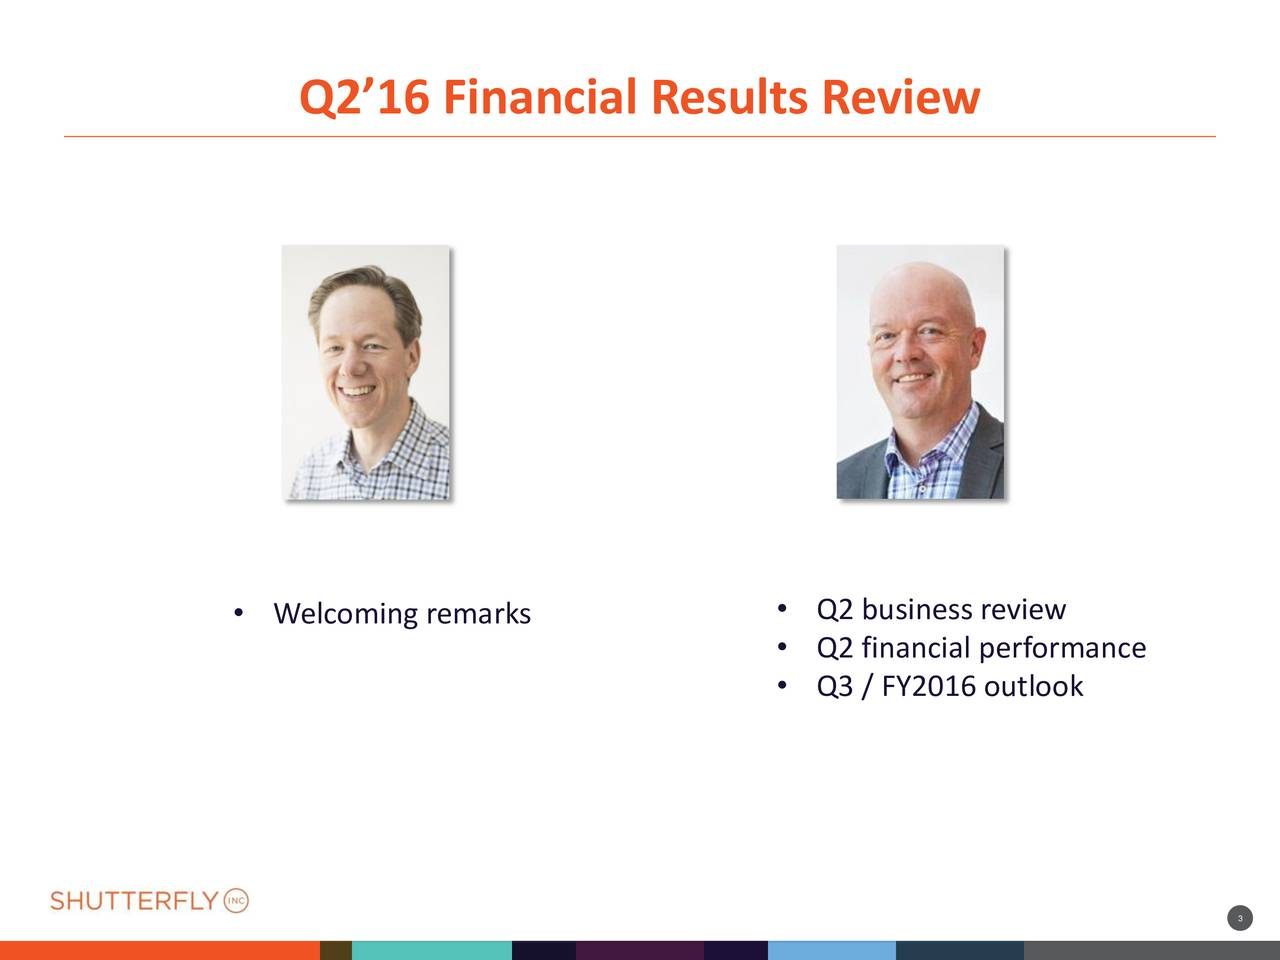 255 83 255 35 Q216 Financial Results Review 21 85 17 194 44 185 88 64 89 23 91 61 27 108 16 173 53 222 Q2 business review Welcoming remarks Q2 financial performance Q3 / FY2016 outlook 37 60 79 80 63 25